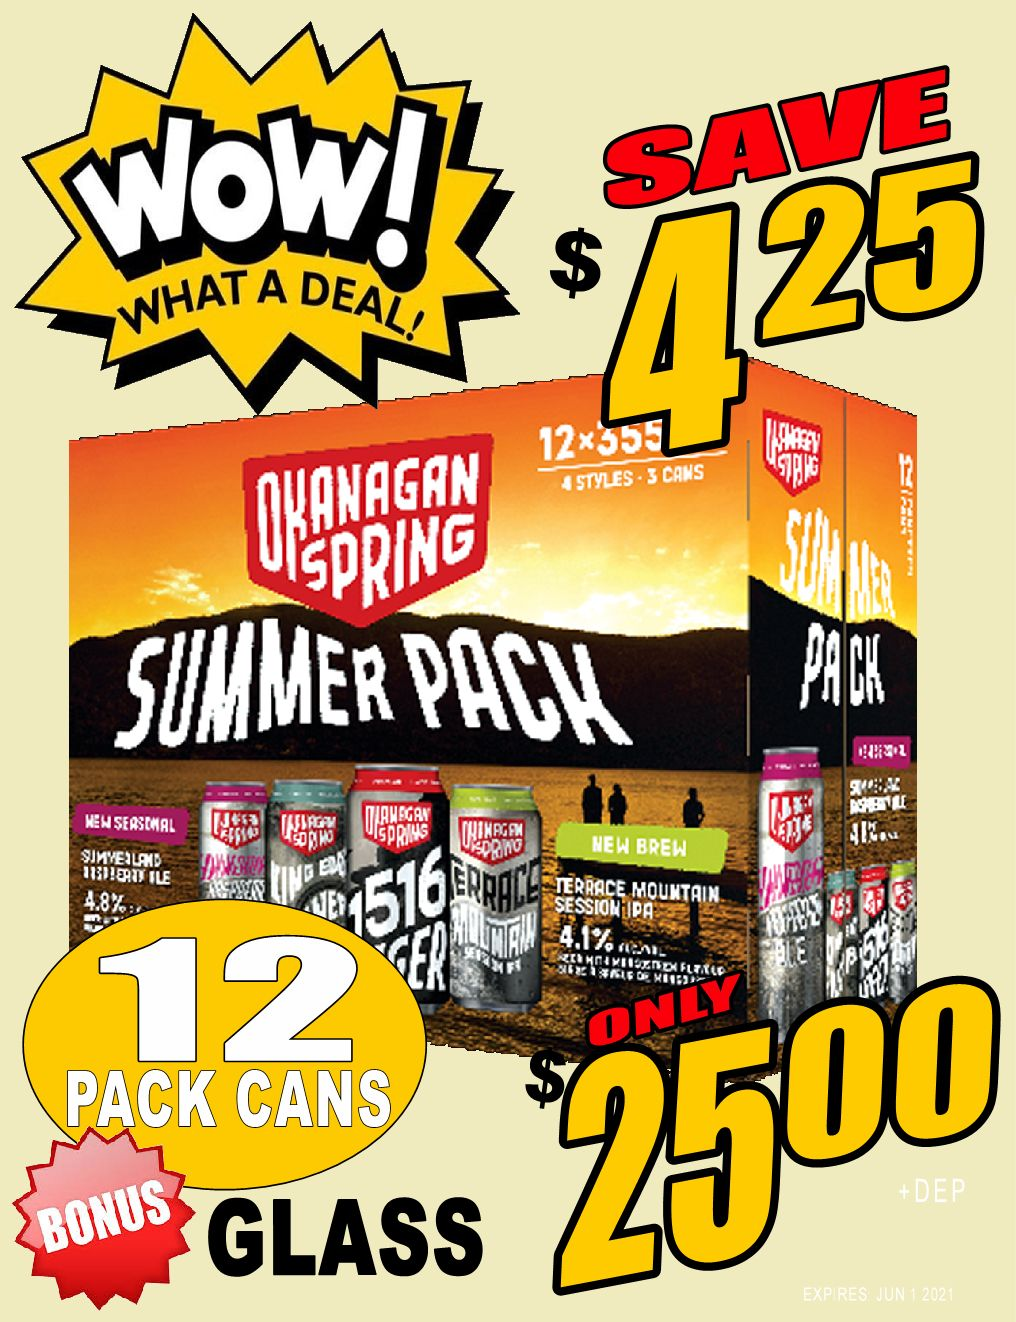 WOW DEAL!! Okanagan Springs Summer Mixer - 12pk can